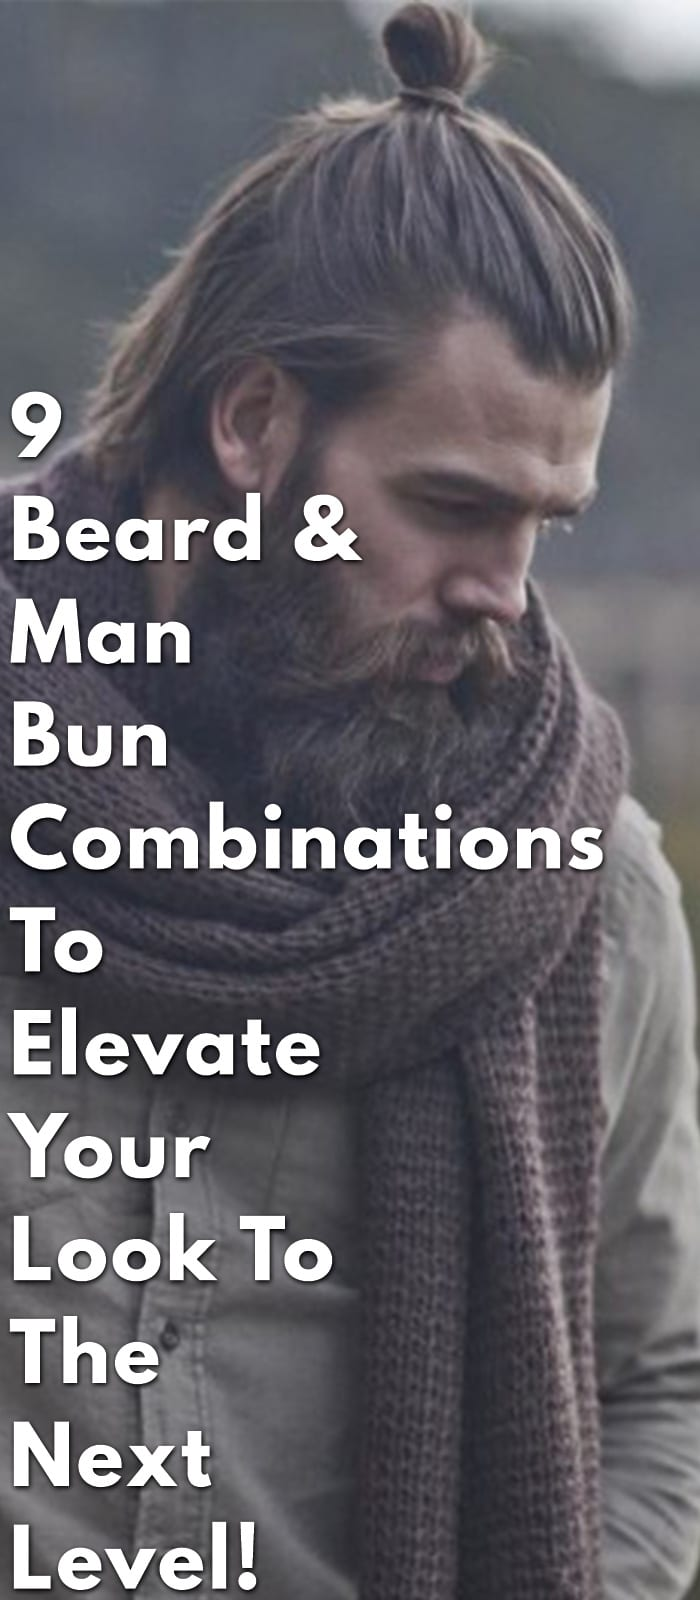 9-Beard-&-Man-Bun-Combinations-To-Elevate-Your-Look-To-The-Next-Level!